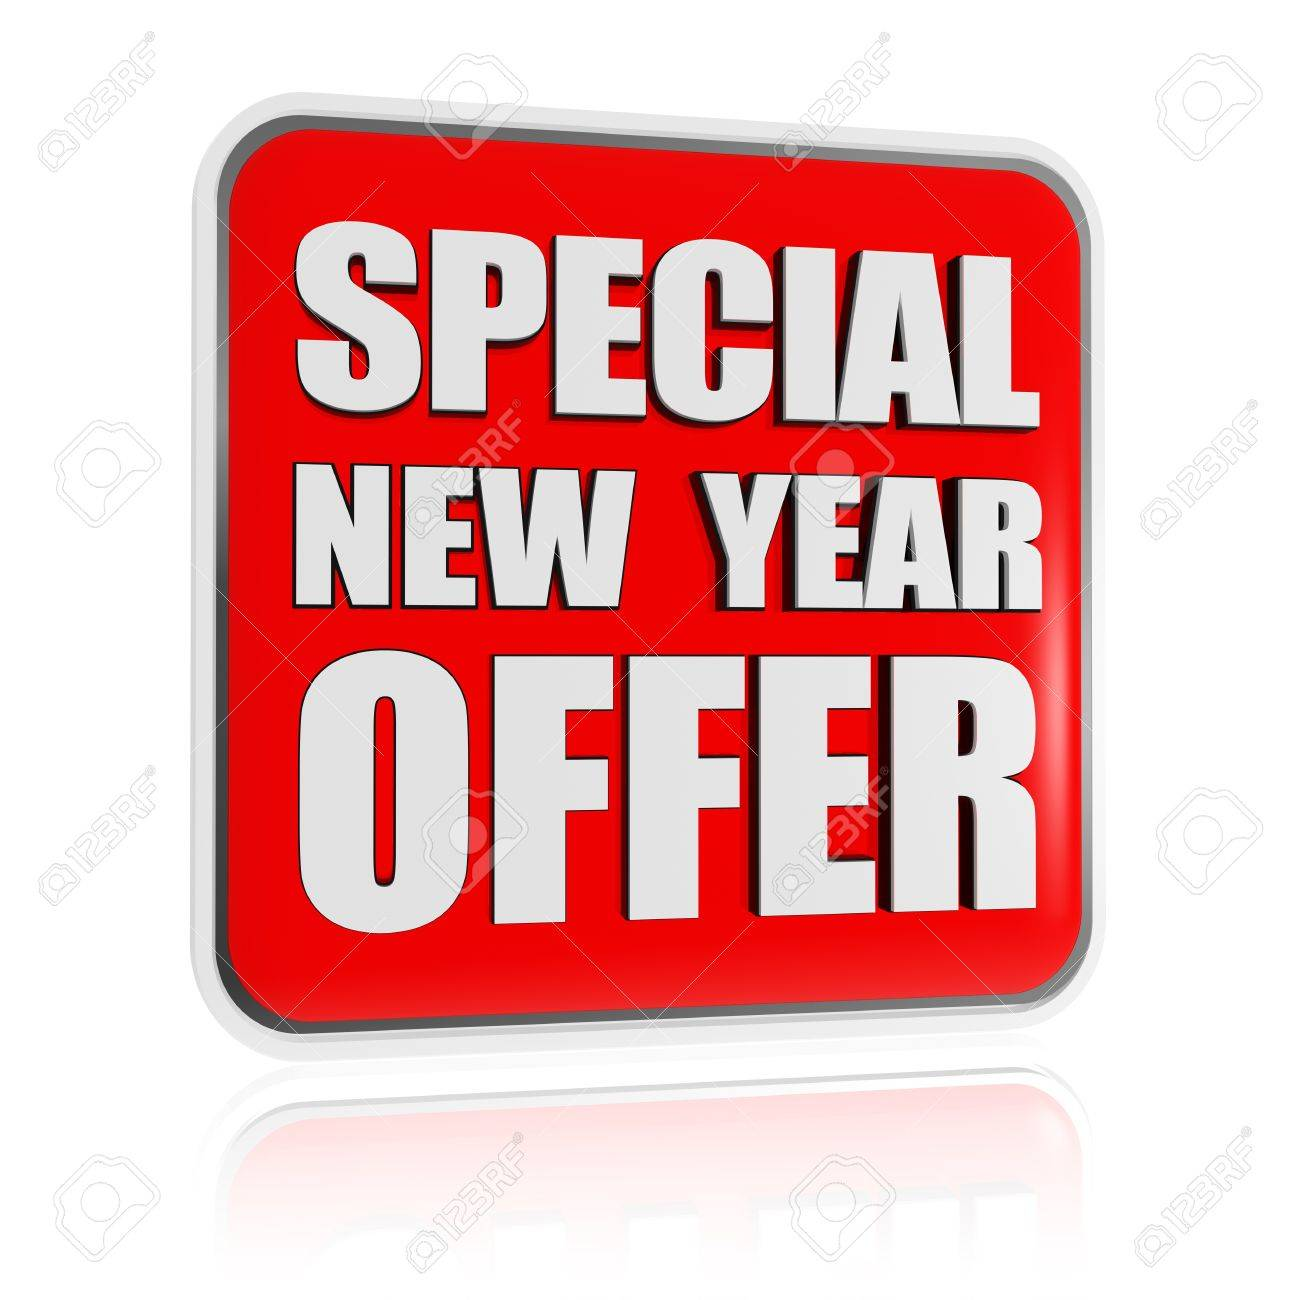 Special New Year Offer 3d Red Banner With White Text, Business ...